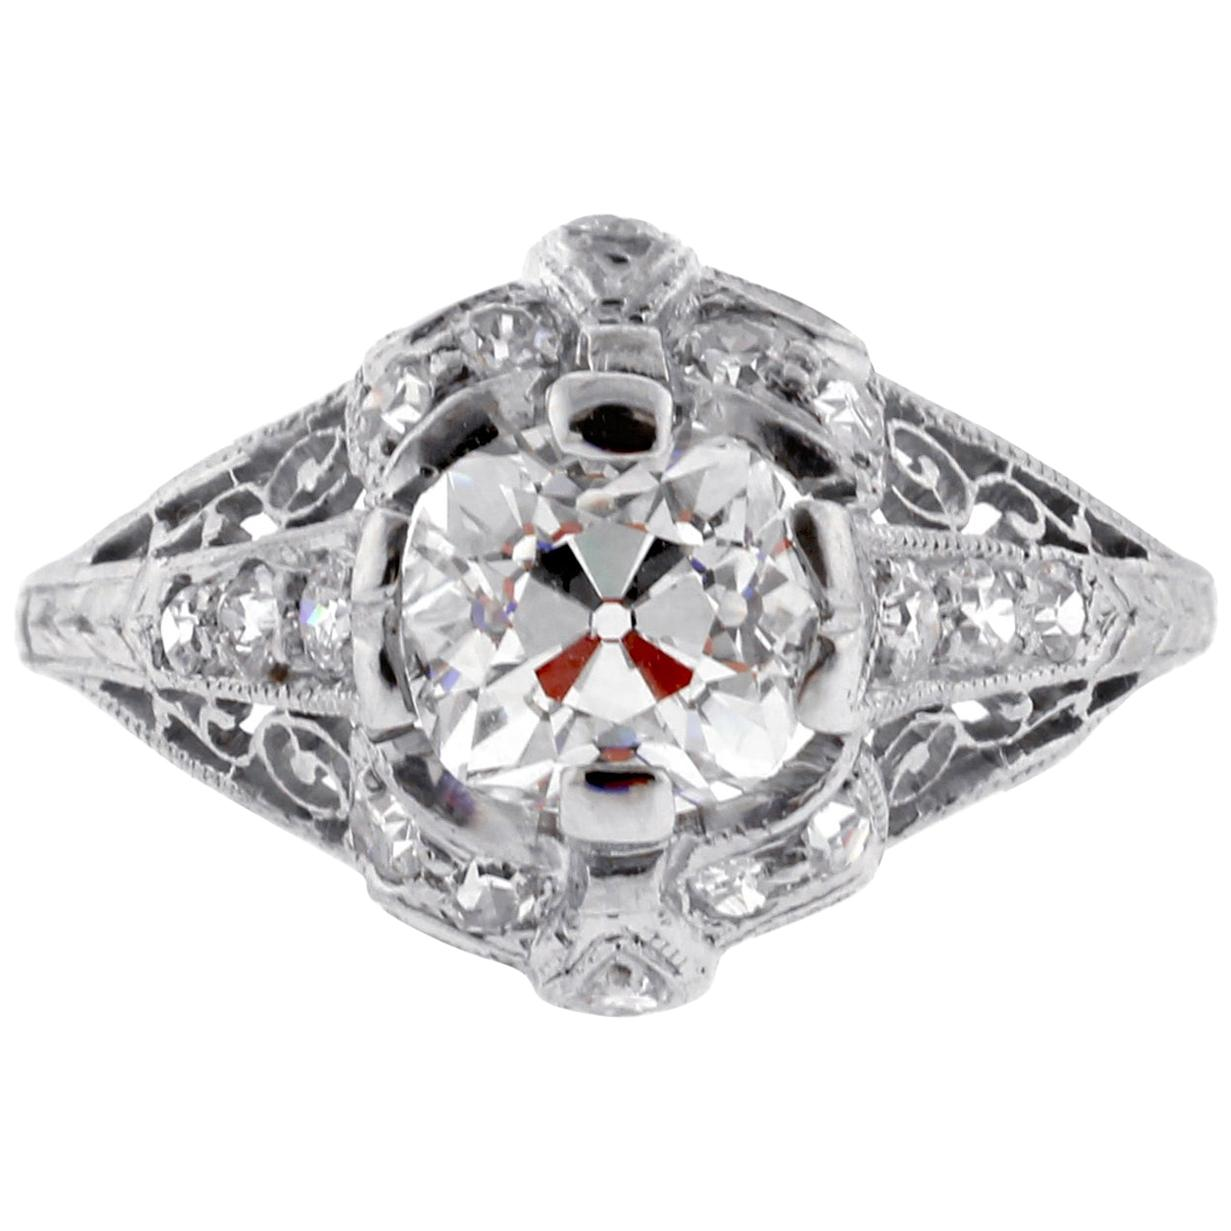 Edwardian Old Mine Cut Diamond Engagement Ring